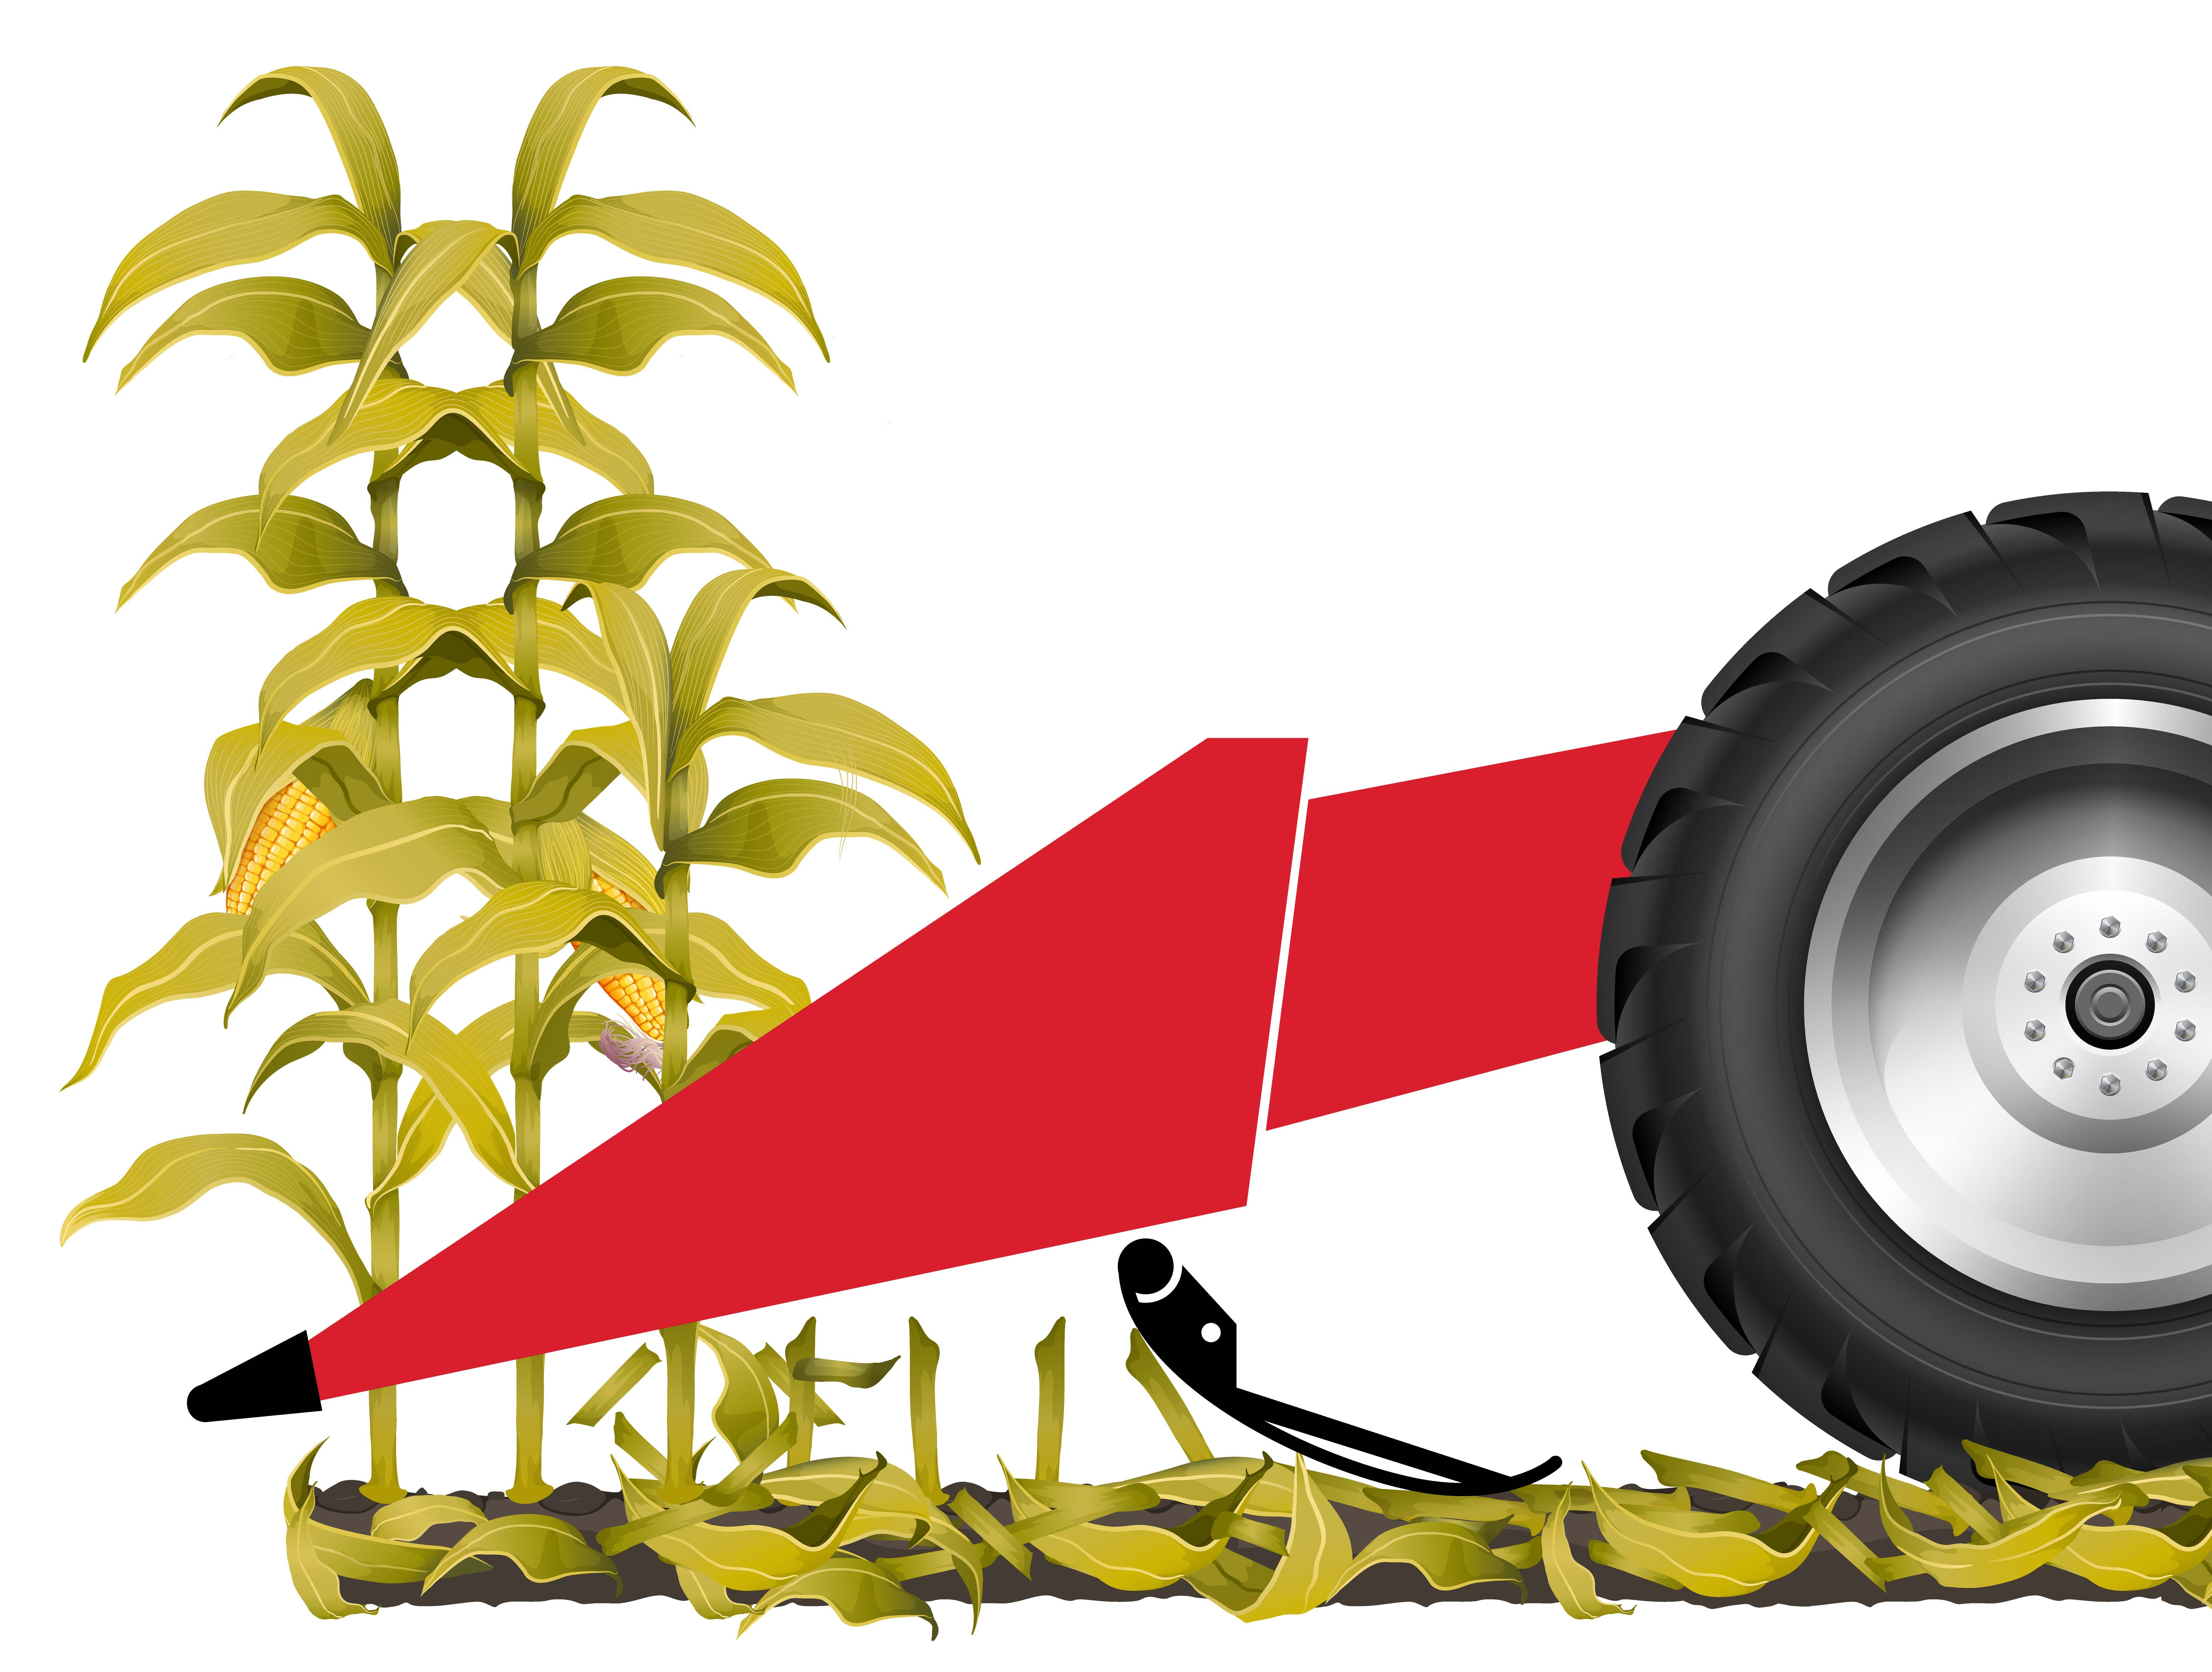 Installing a stubble deflection device on your combine's header is probably the single best investment you can make to protect your tires and tracks from stubble damage.